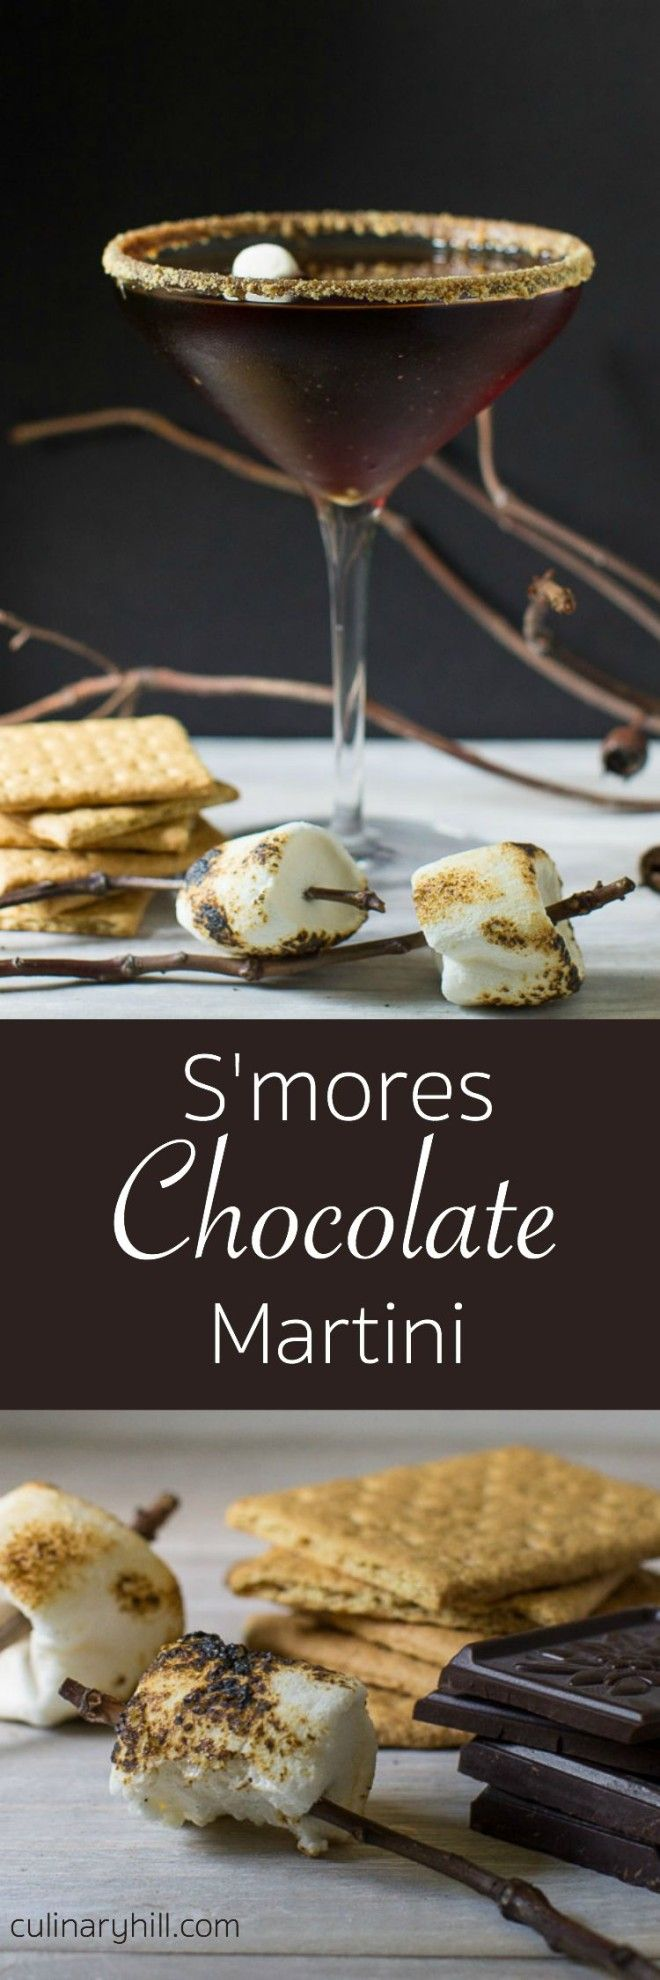 A rich, indulgent chocolate martini with all the trappings of traditional S'mores. It's a summer time treat you can enjoy without the camp fire!